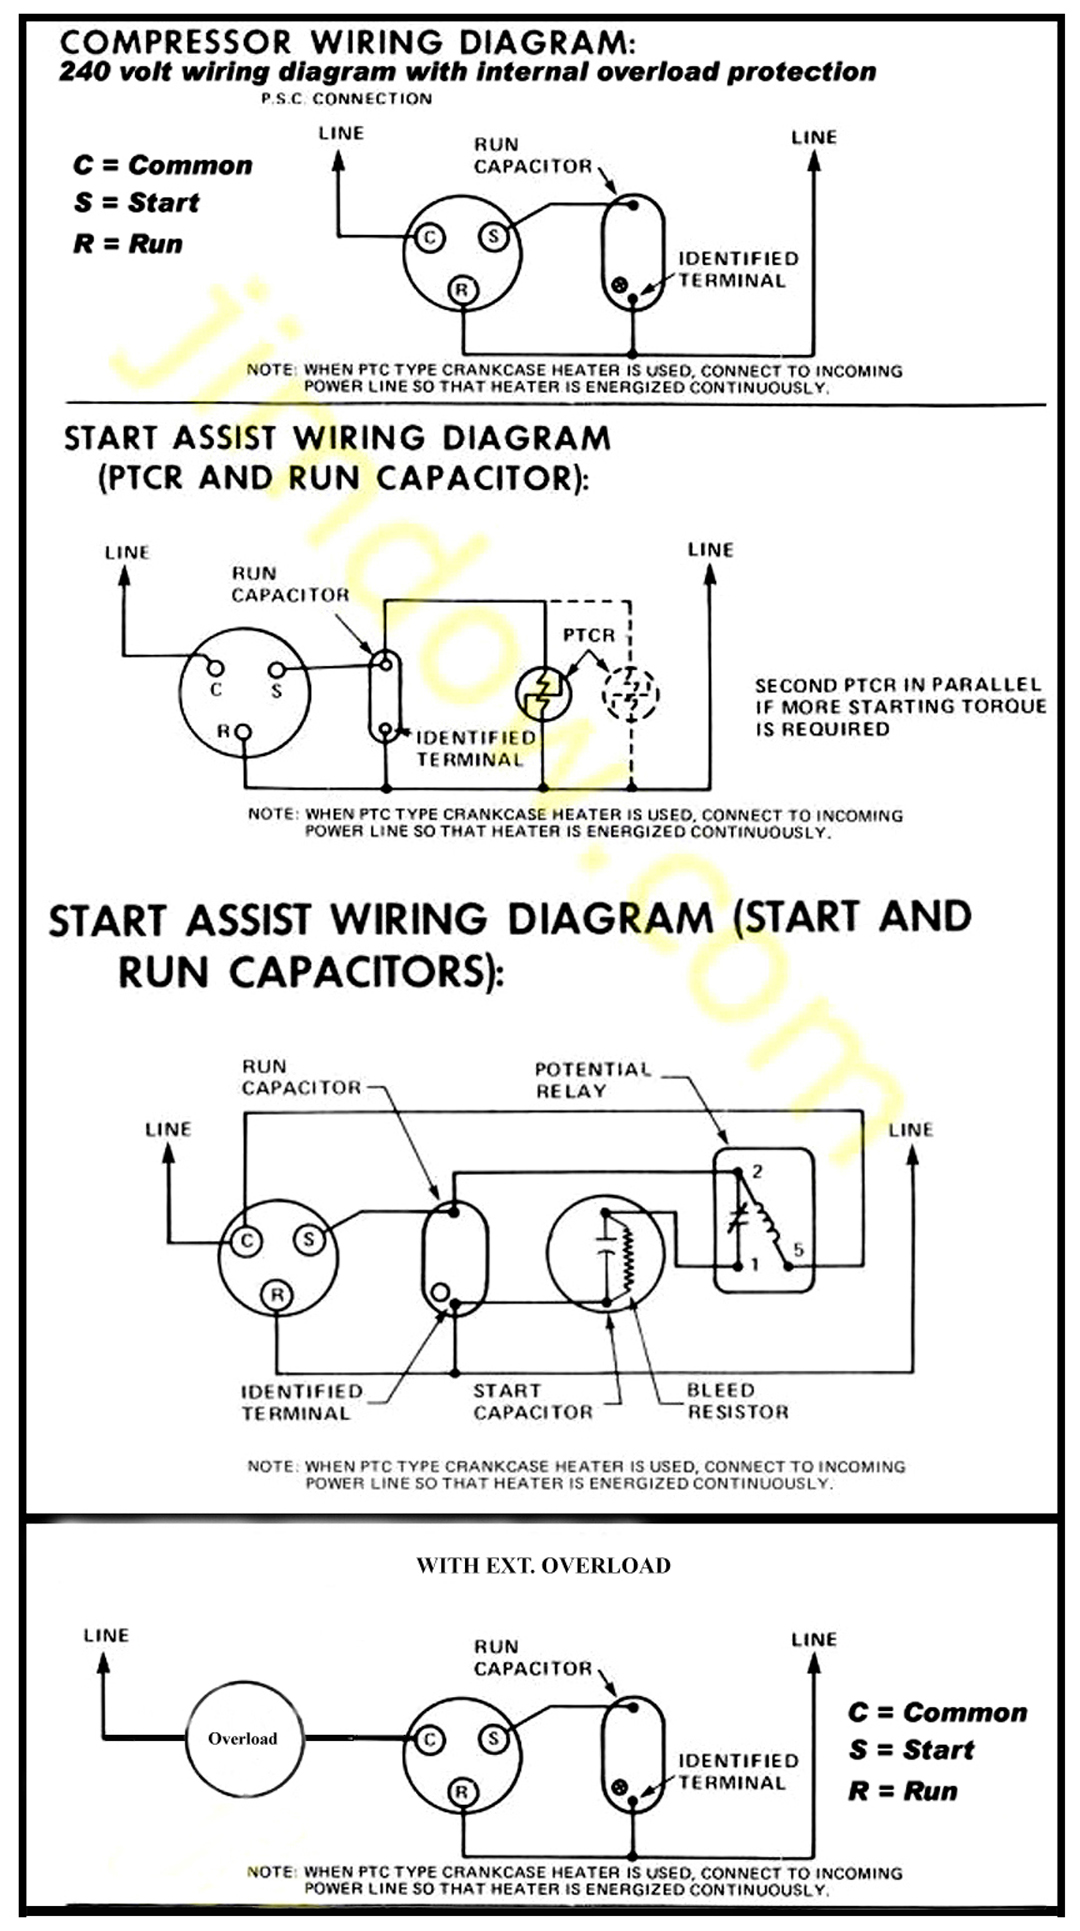 Compressor Wiring Diagrams Quick Start Guide Of Diagram Columbia Tv Ac Simple Site Rh 20 6 4 Ohnevergnuegen De